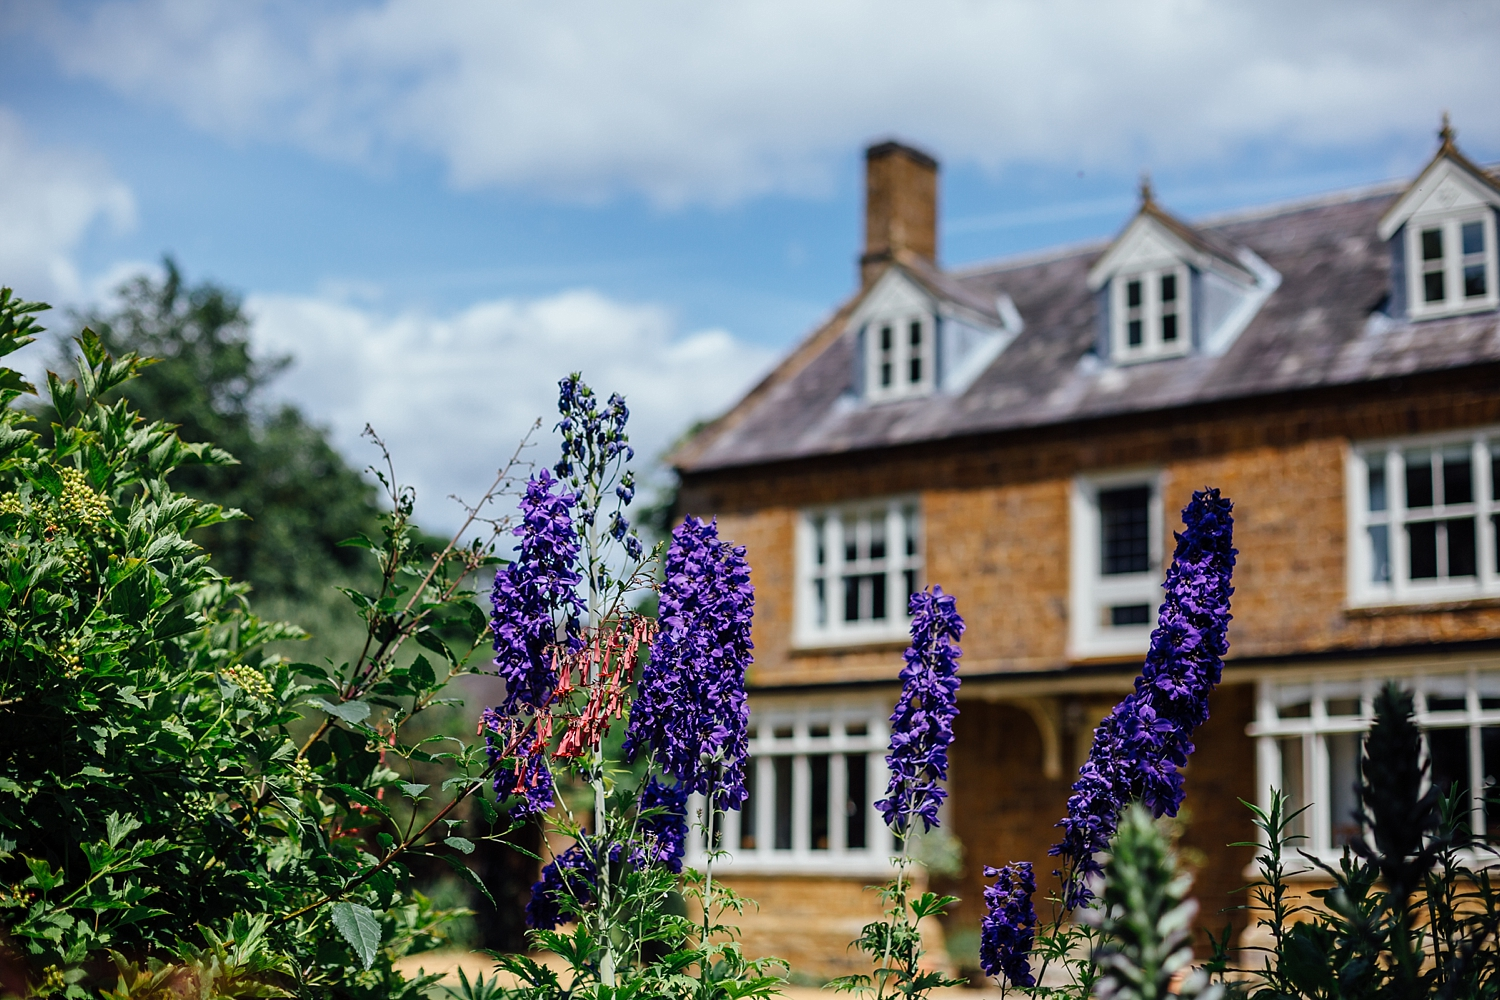 alexvictor-blog-natural-fun-relaxed-documentary-charlotte-jopling-wedding-photography-northamptonshire-home-garden-country-summer-2.jpg